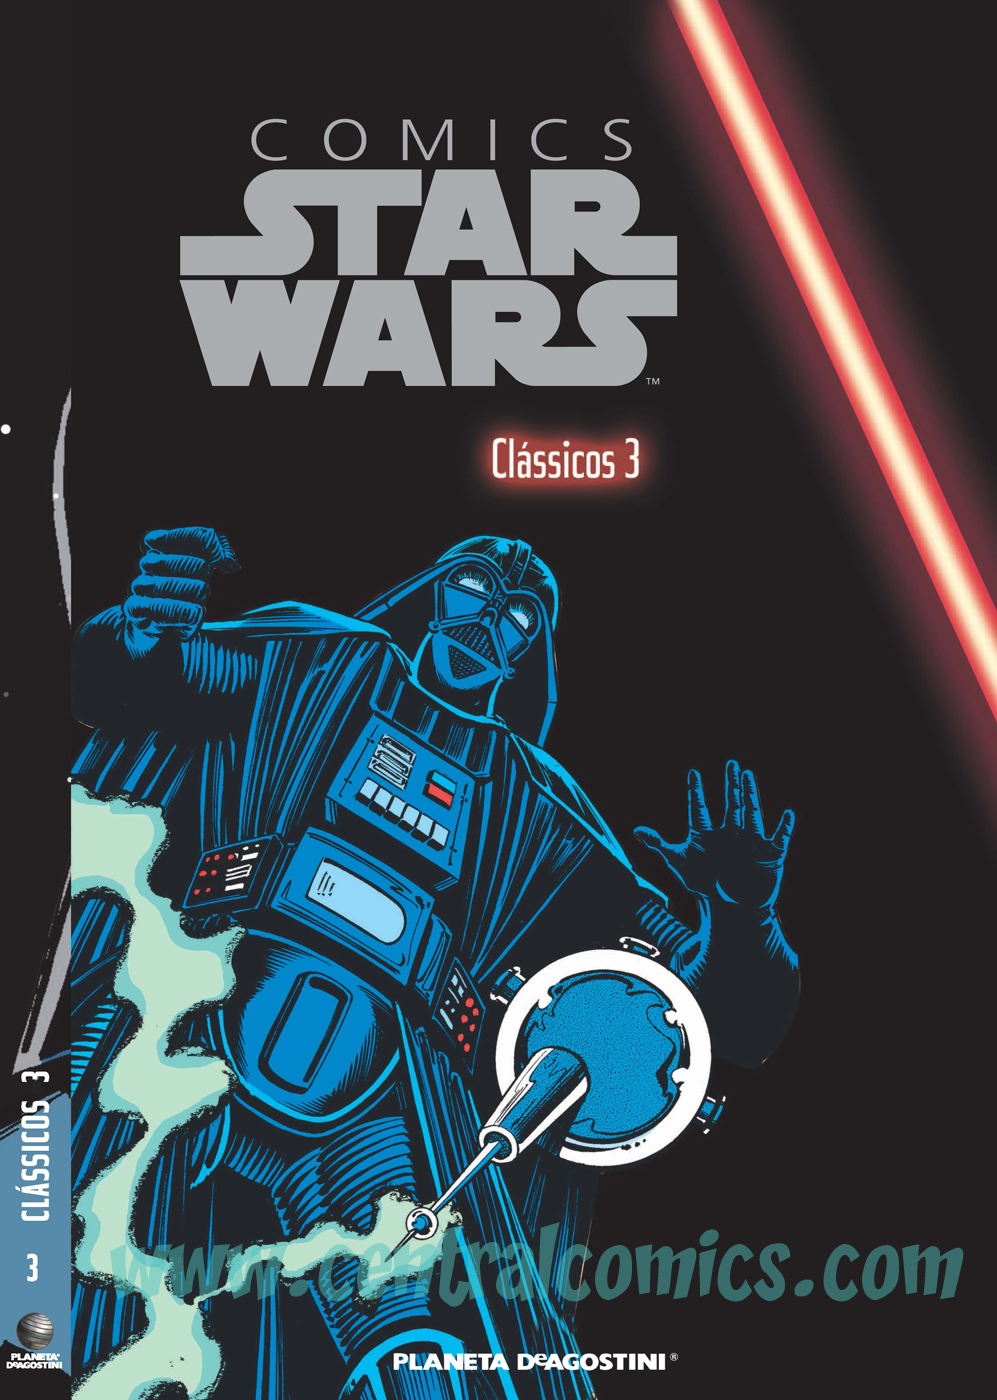 Comics star wars 3 capa